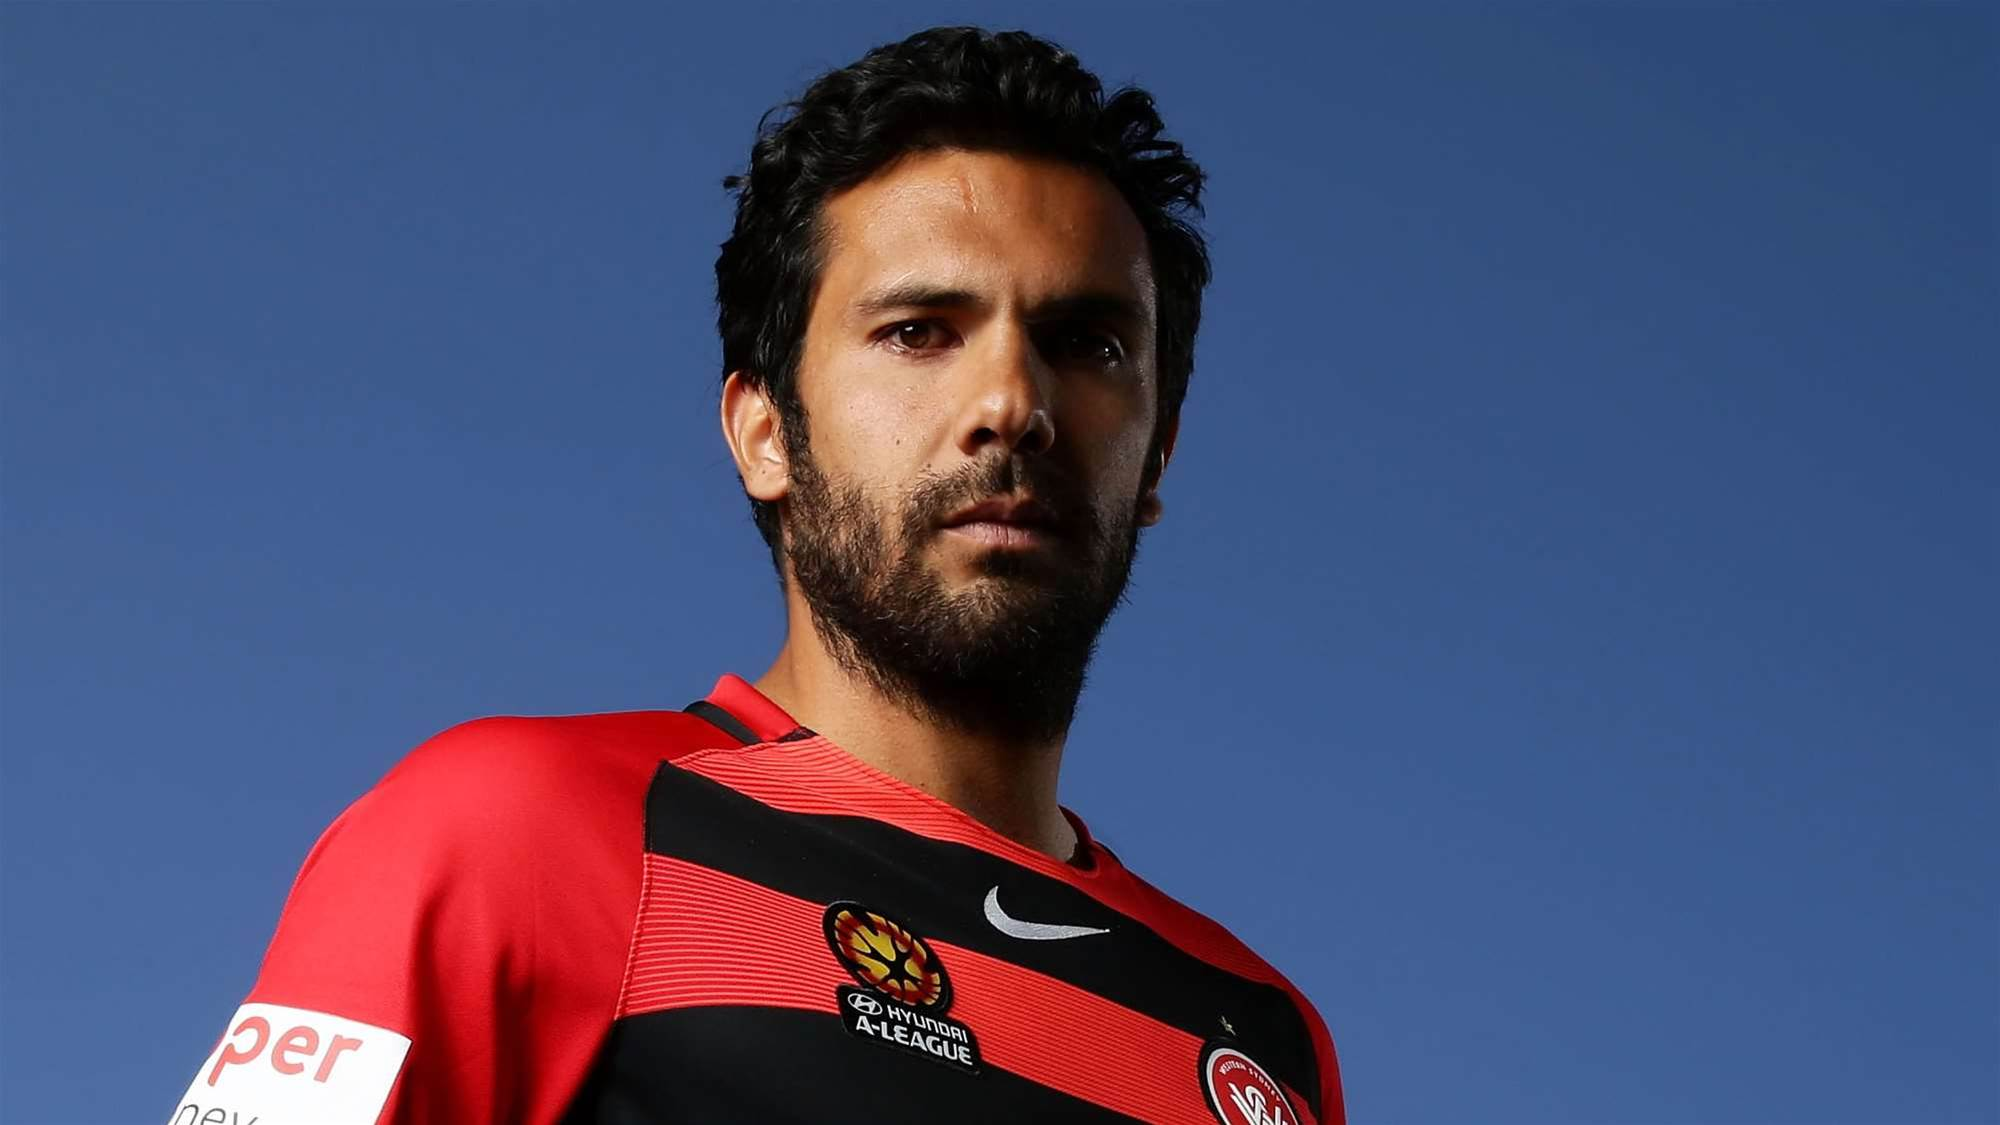 Wanderers captain set for exit